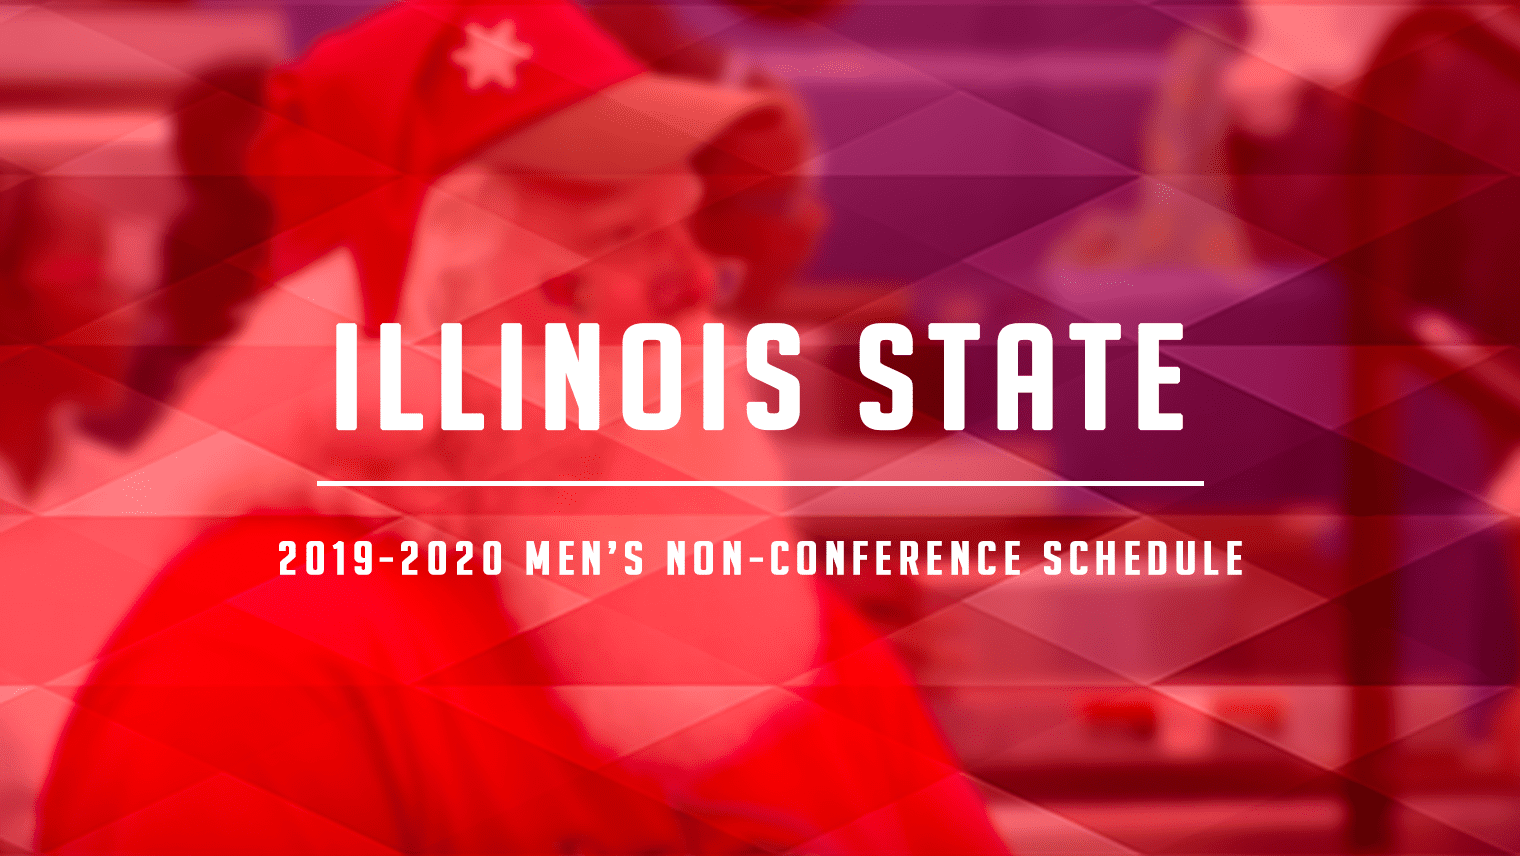 Illinois State has placed a few tough games on its non-conference schedule, especially with the Paradise Jam giving the team a few marquee matchups.